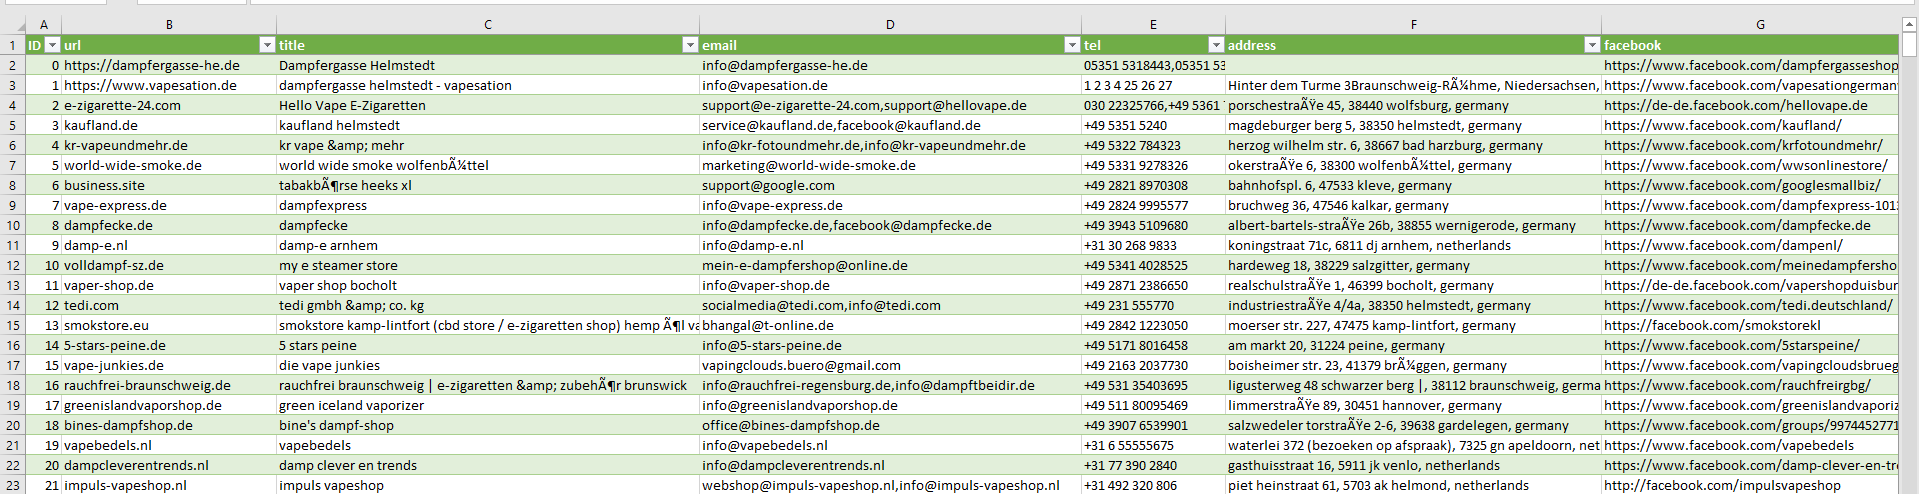 Sample Screenshot of Germany Vape Store Data List